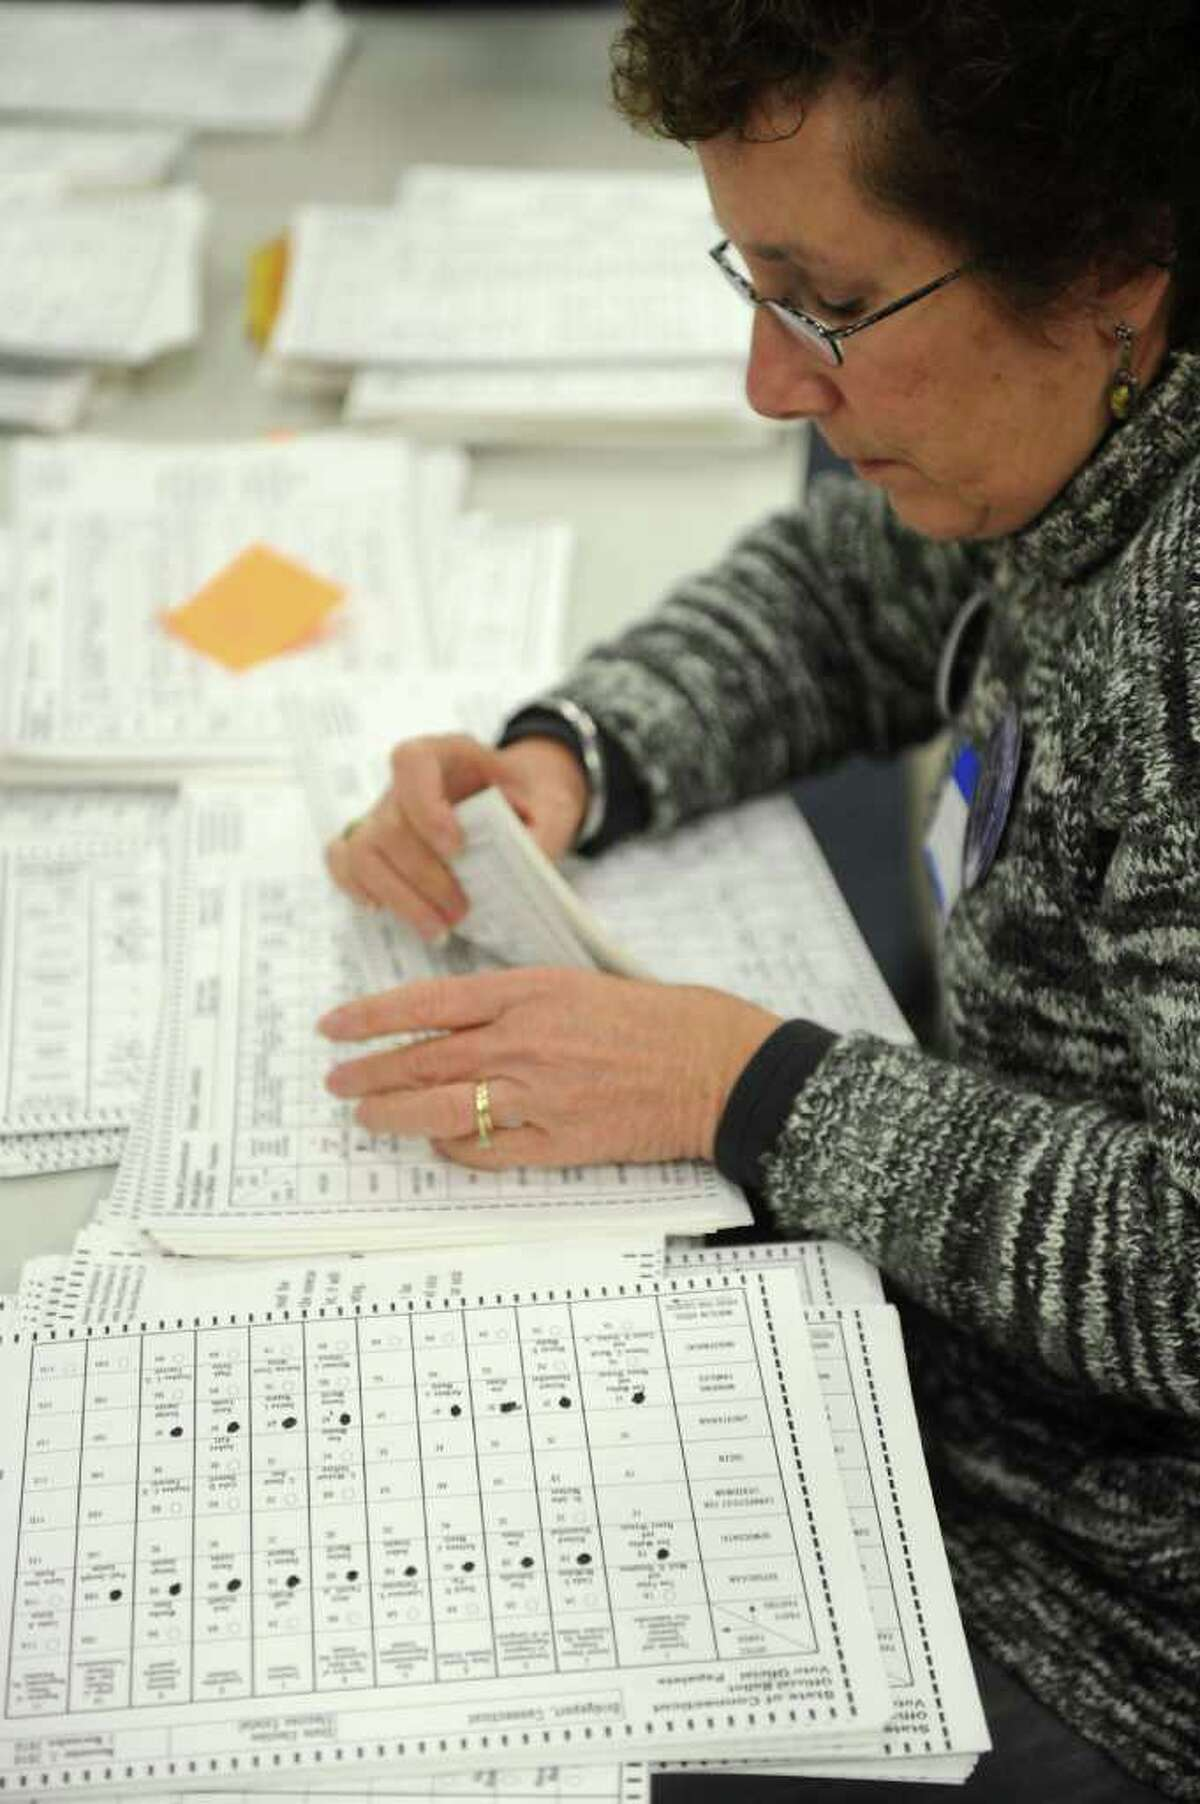 Yvonne Senturia helps re-count ballots at the City Hall Annex on Thursday, November 2, 2010.